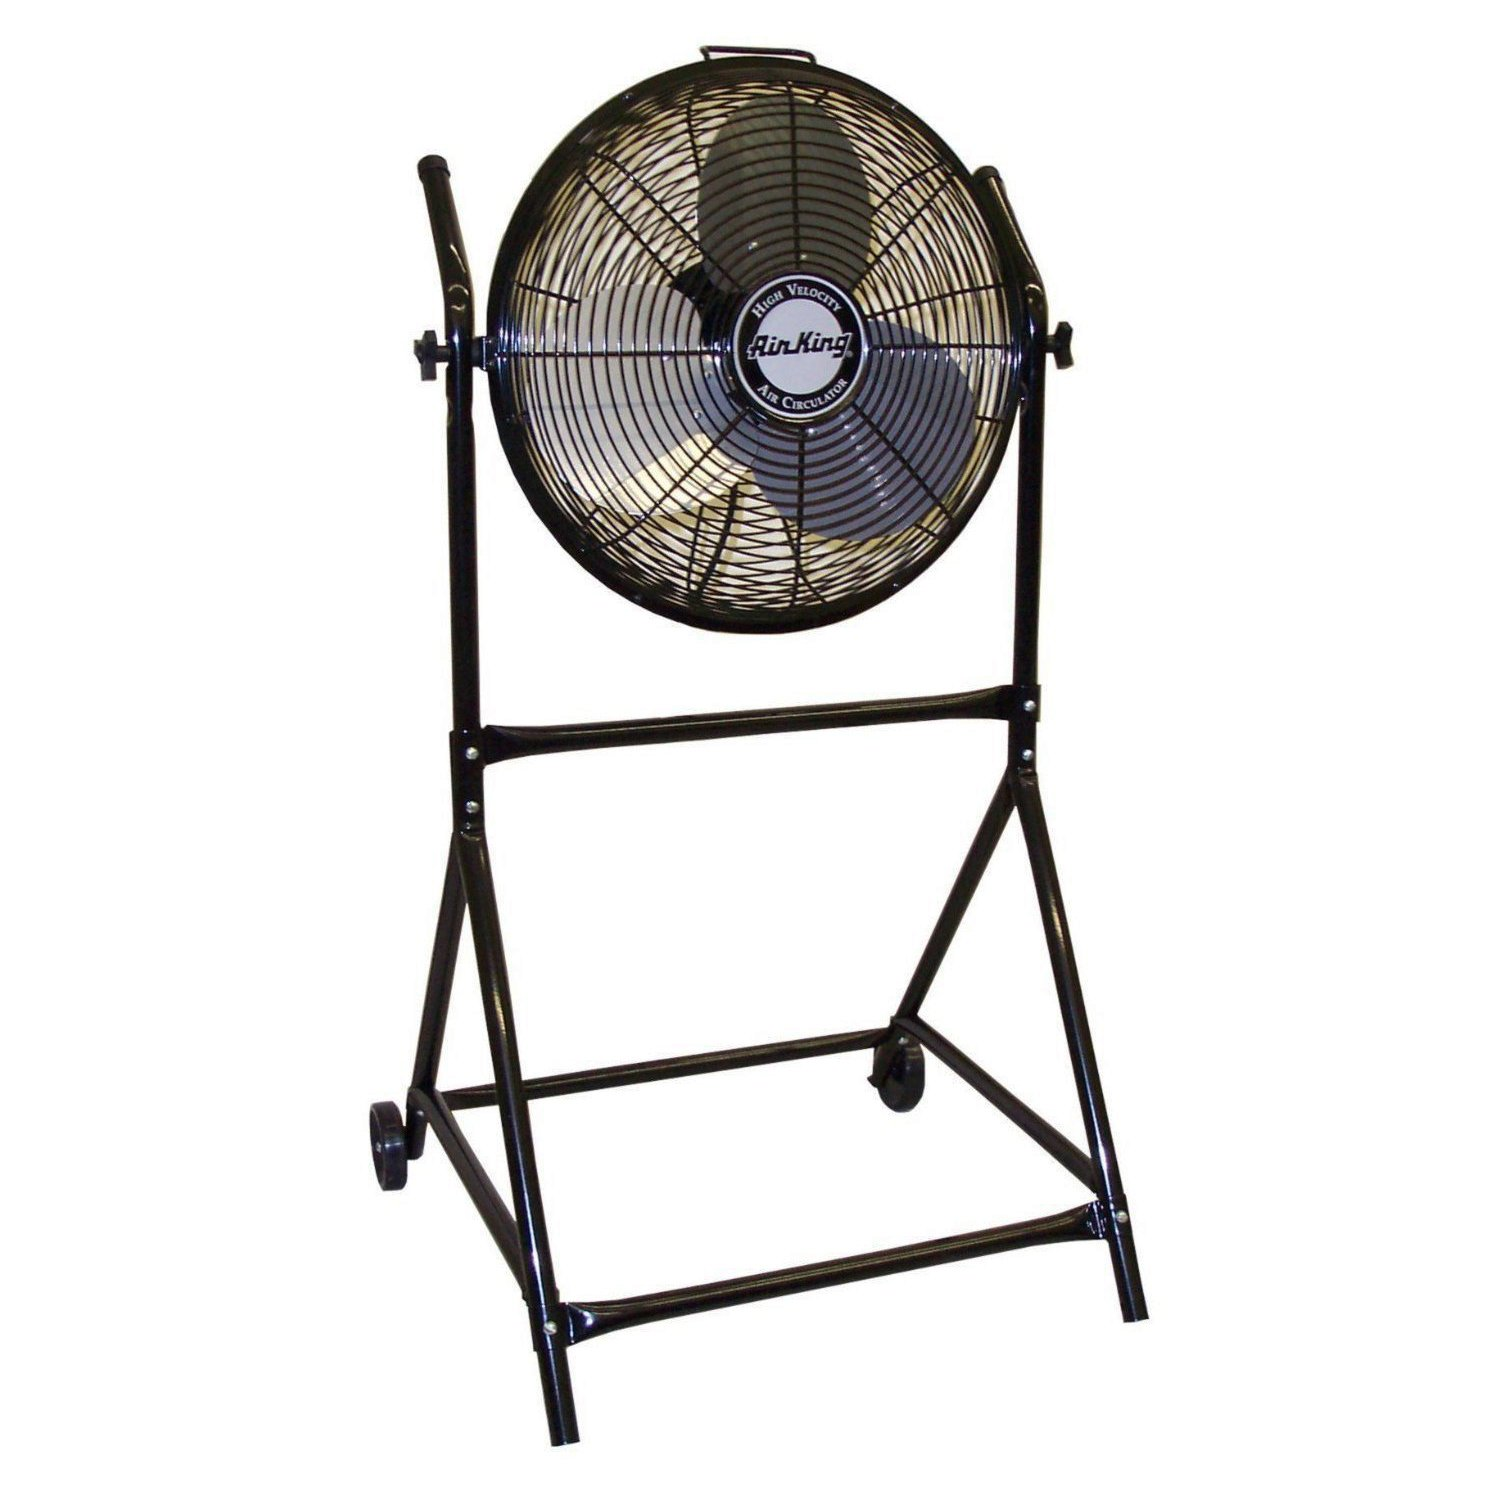 "Air King 18"" 1/6 HP 3-Speed Adjustable Height Floor Fan with Roll-About Stand"